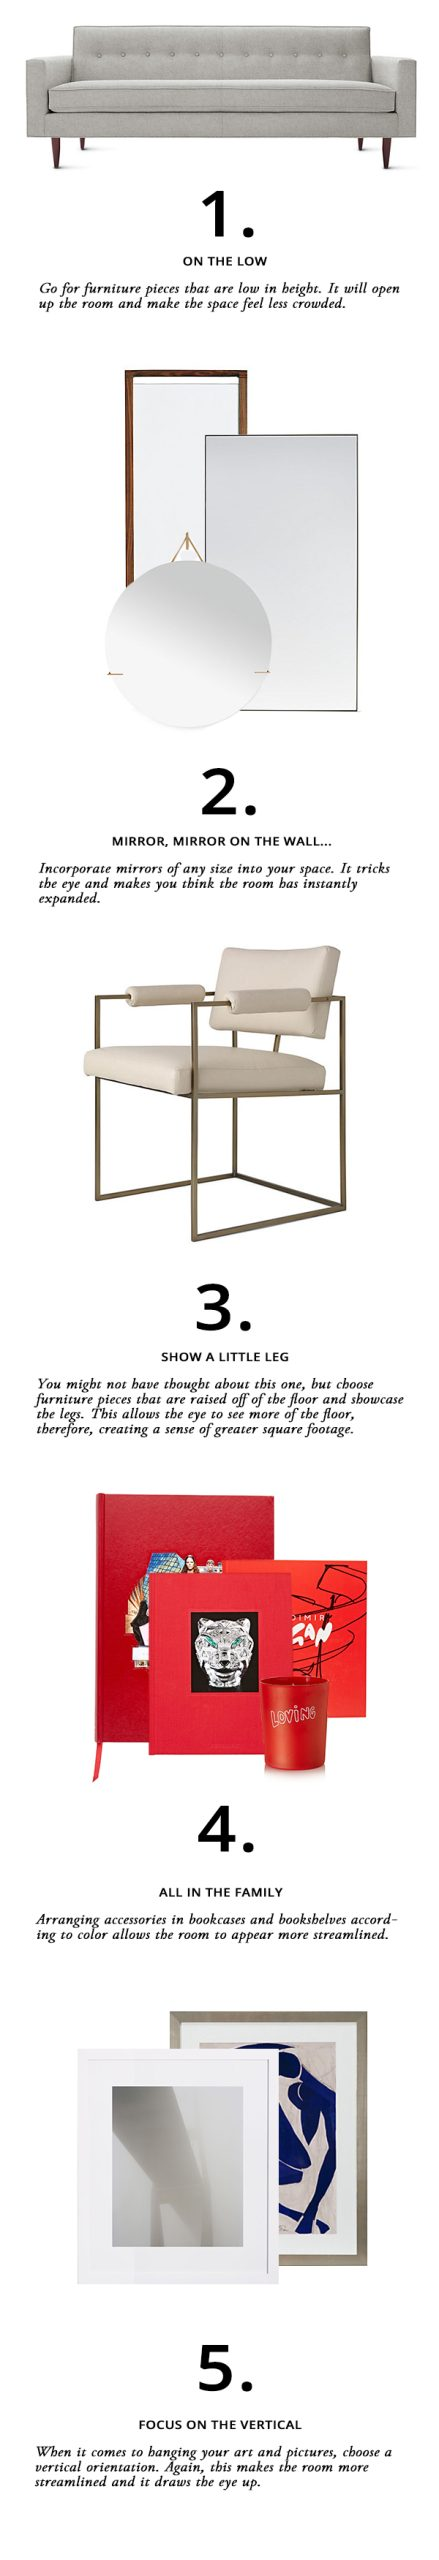 Live Stylish Daily's How to Make a Room Appear Larger